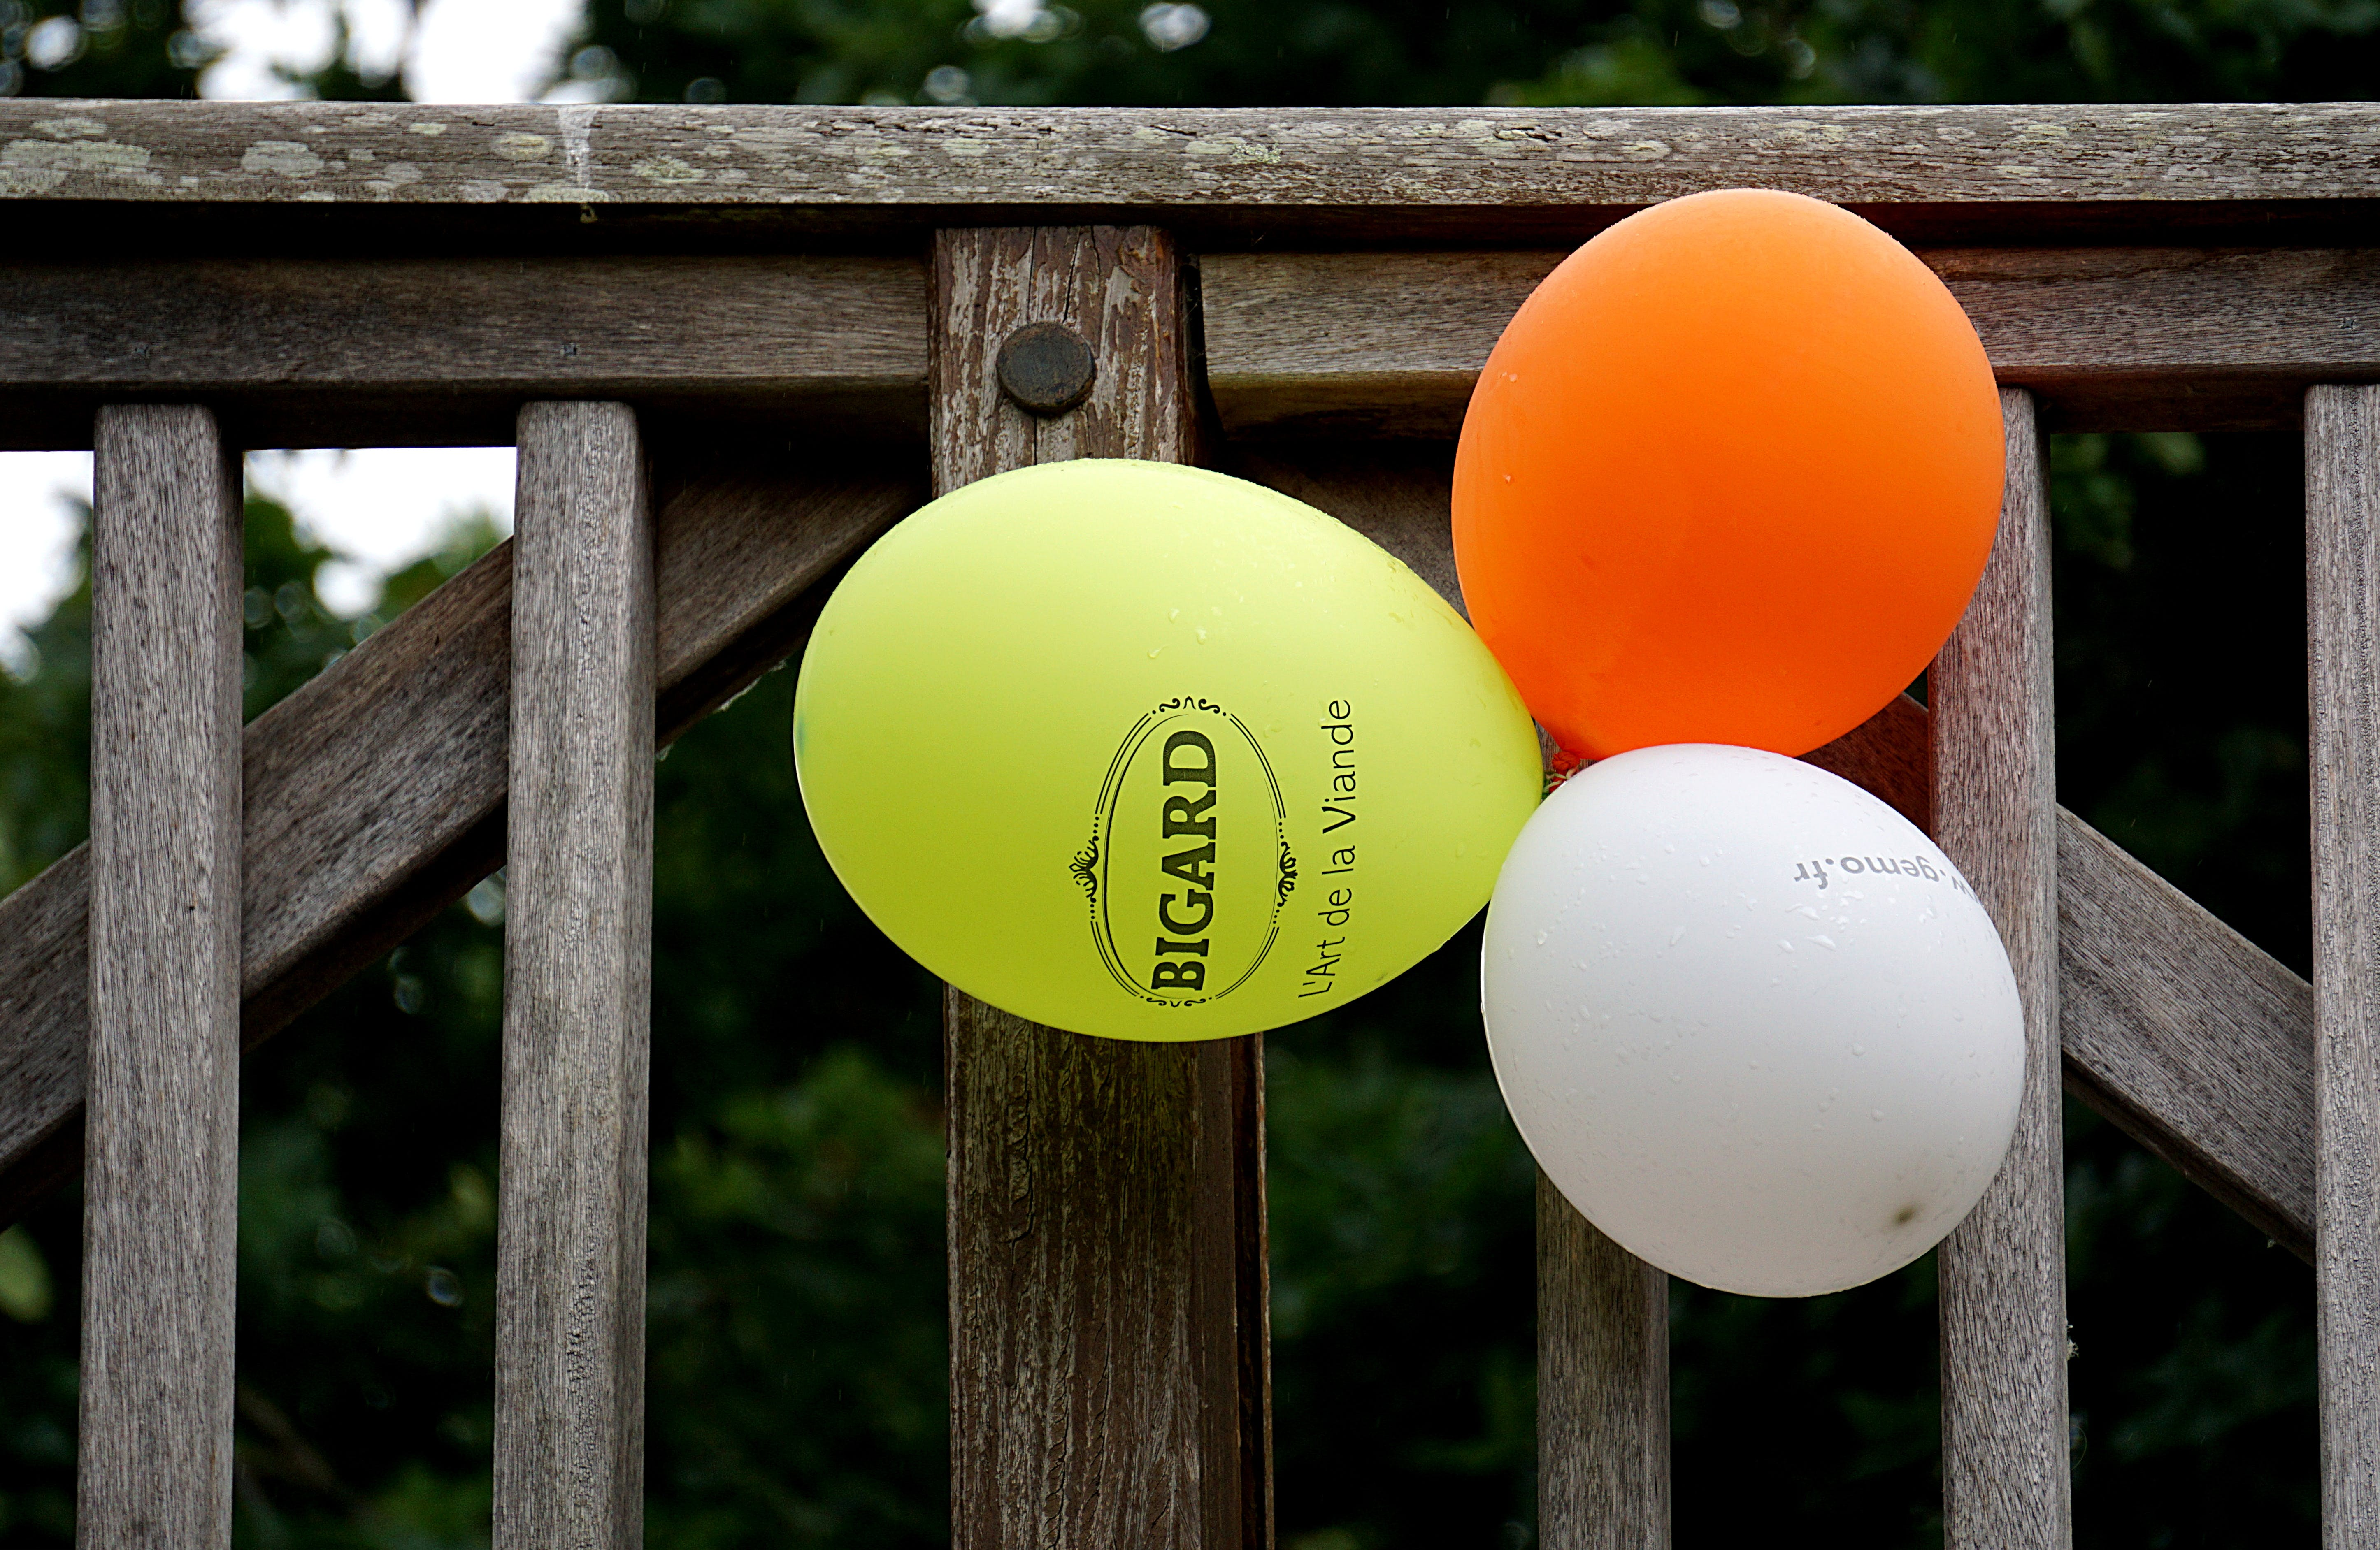 Yellow Orange and White Balloon Beside Gray Wooden Fence